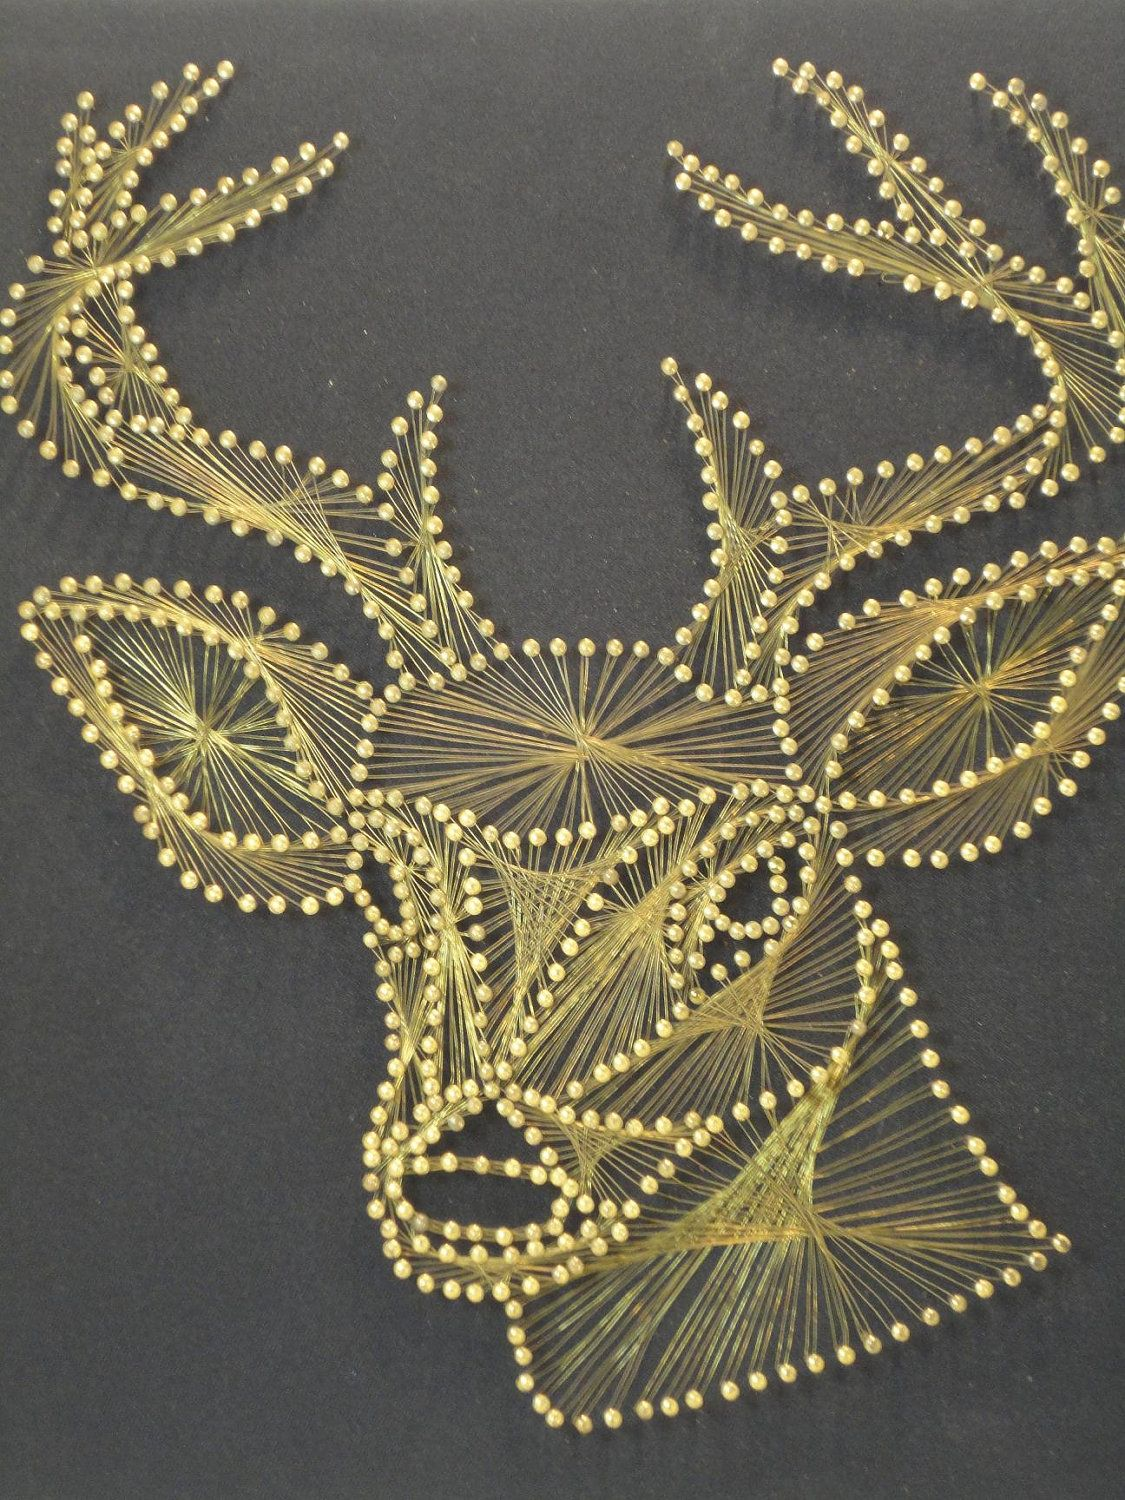 Vintage Stag String Art Wall Hanging | Nail art, Diy string art ...